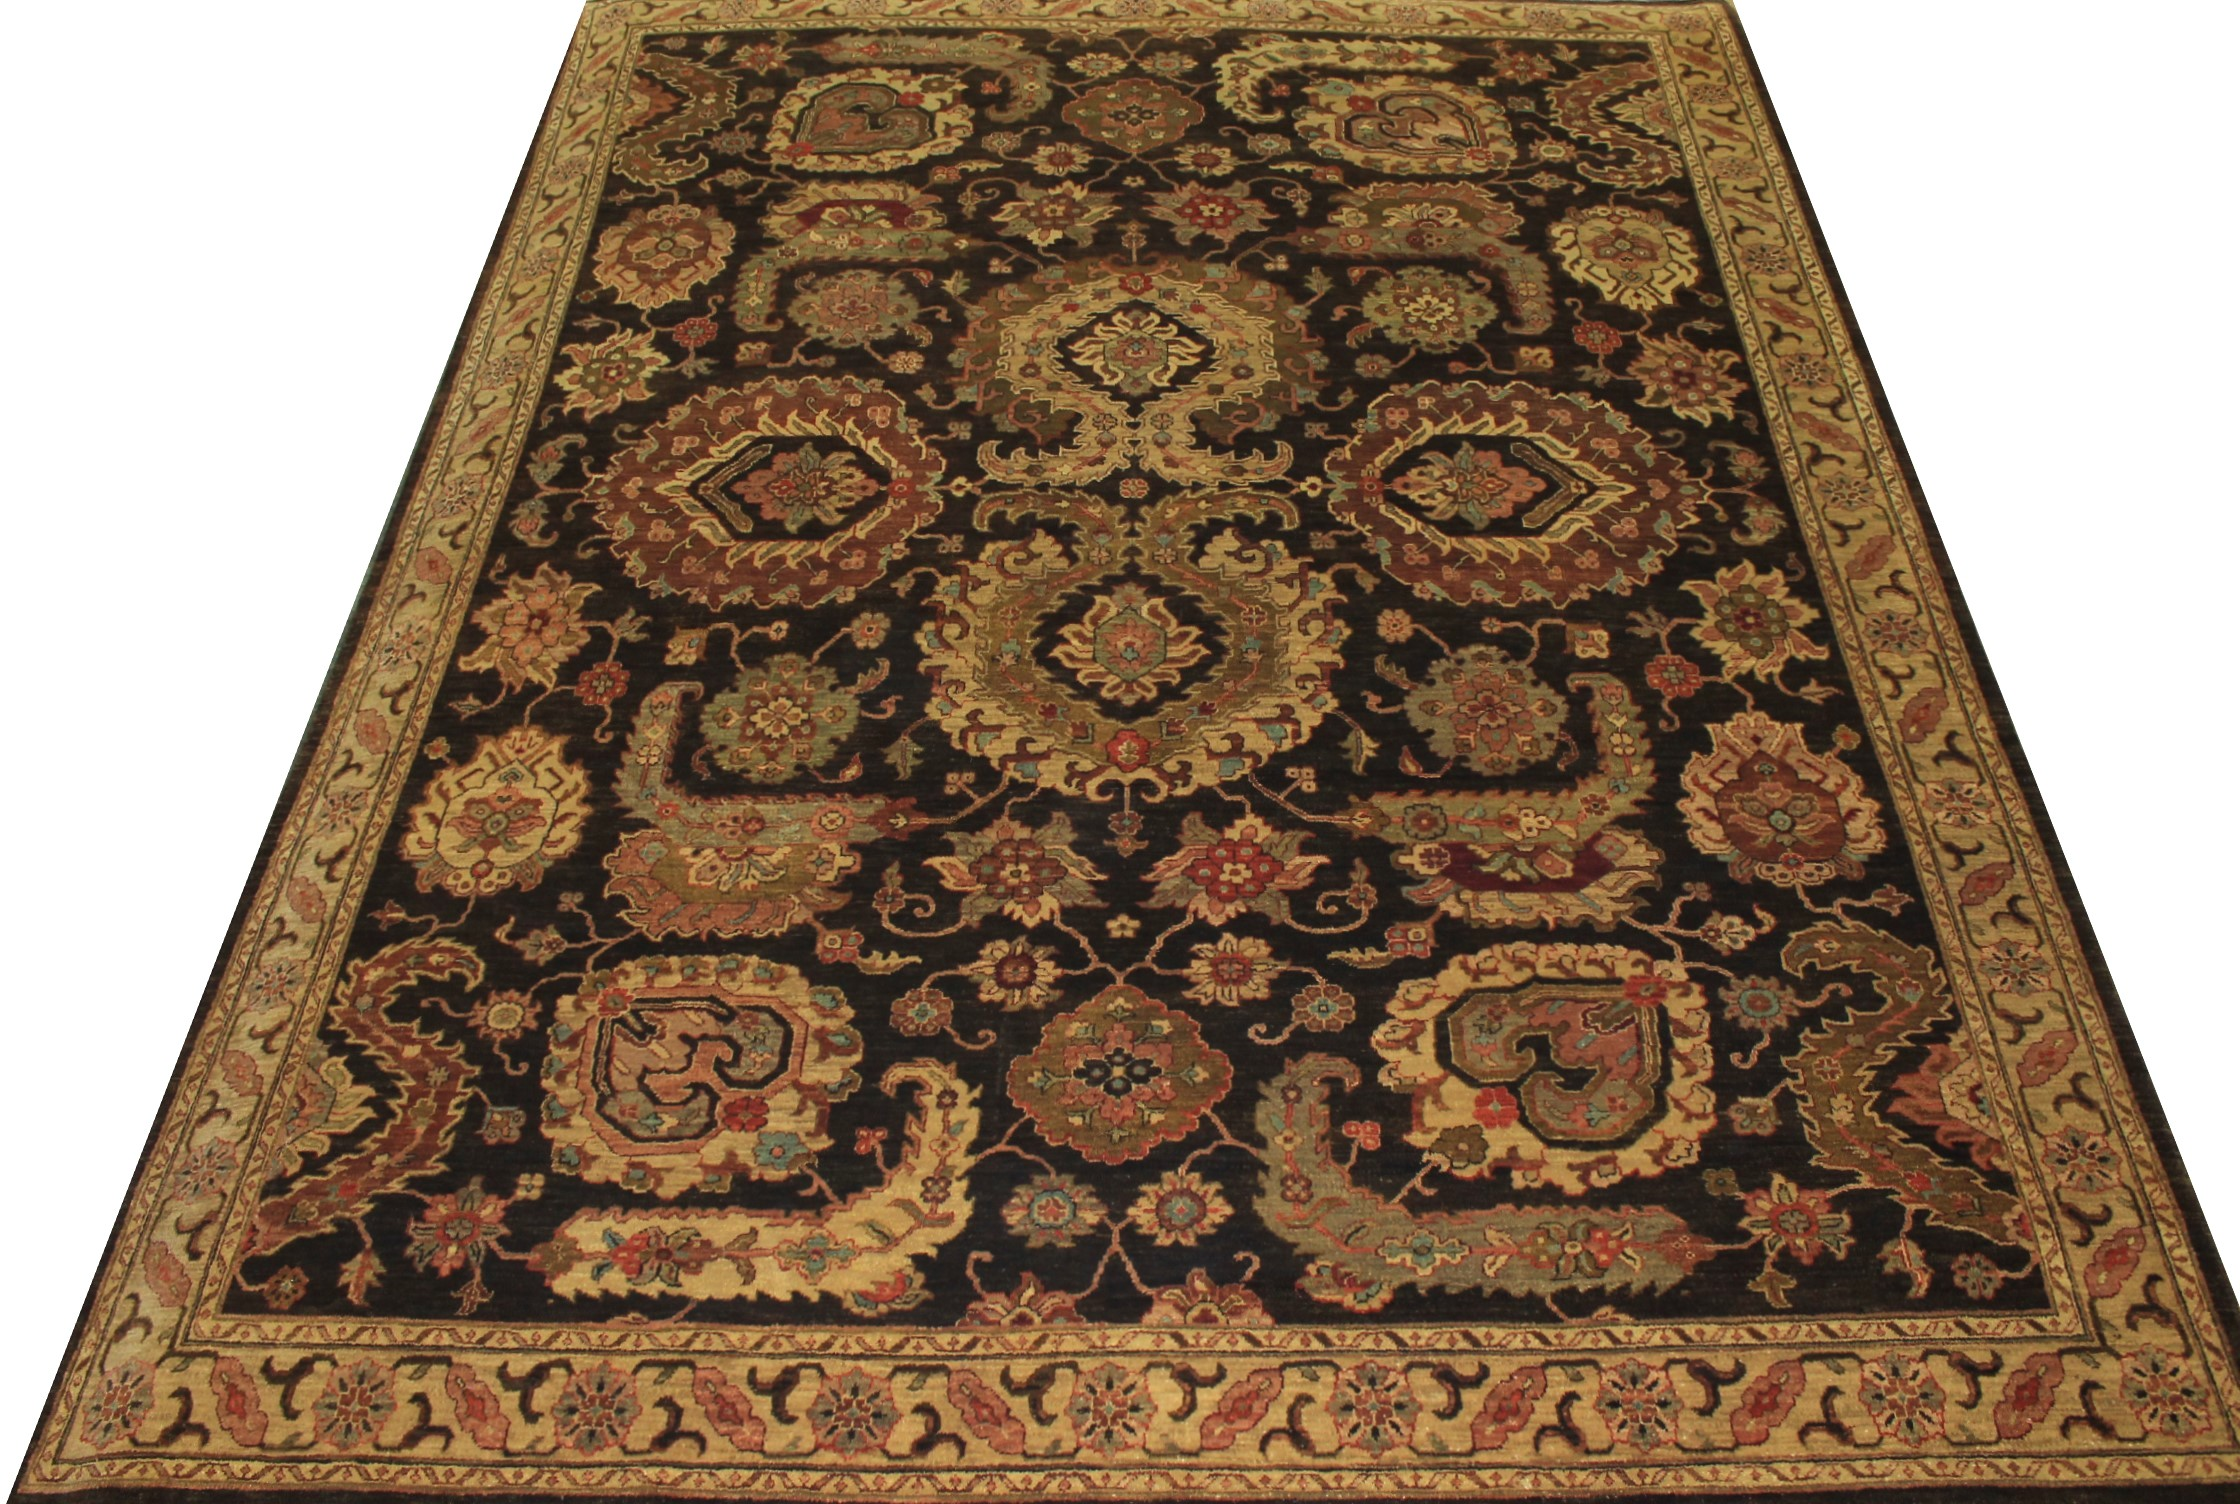 8x10 Antique Revival Hand Knotted Wool Area Rug - MR14302